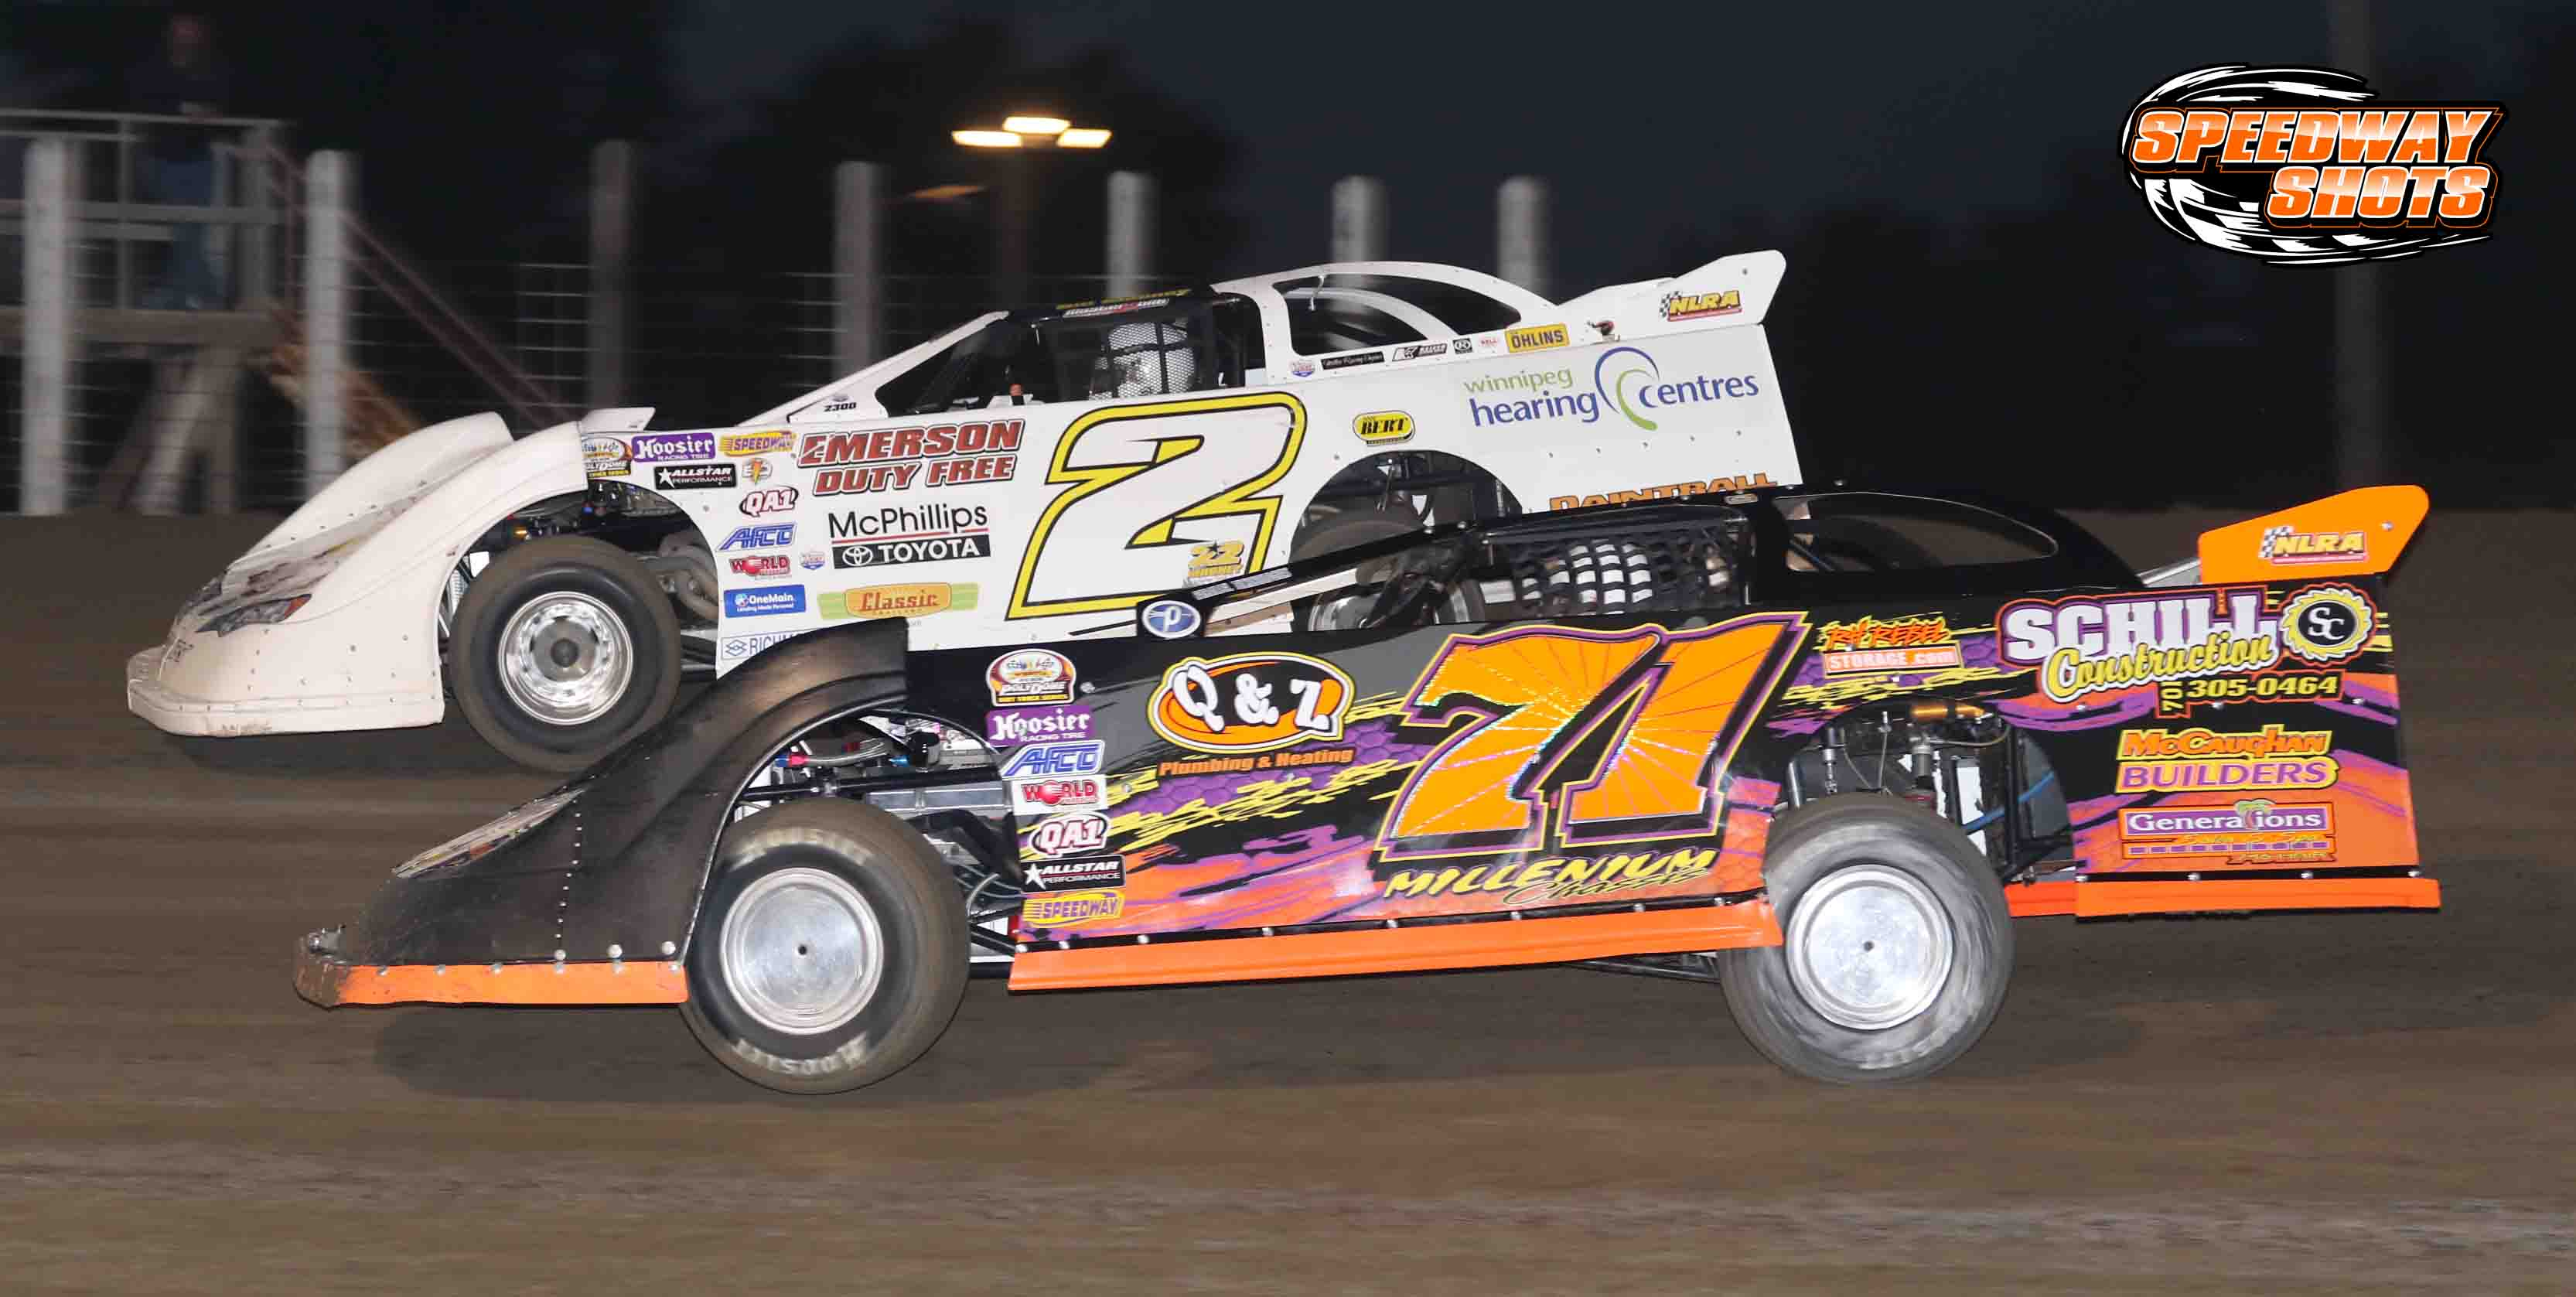 Bill Mooney, Dustin Strand, NLRA Late Models, River Cities Speedway, Speedway Shots, Mike Spieker